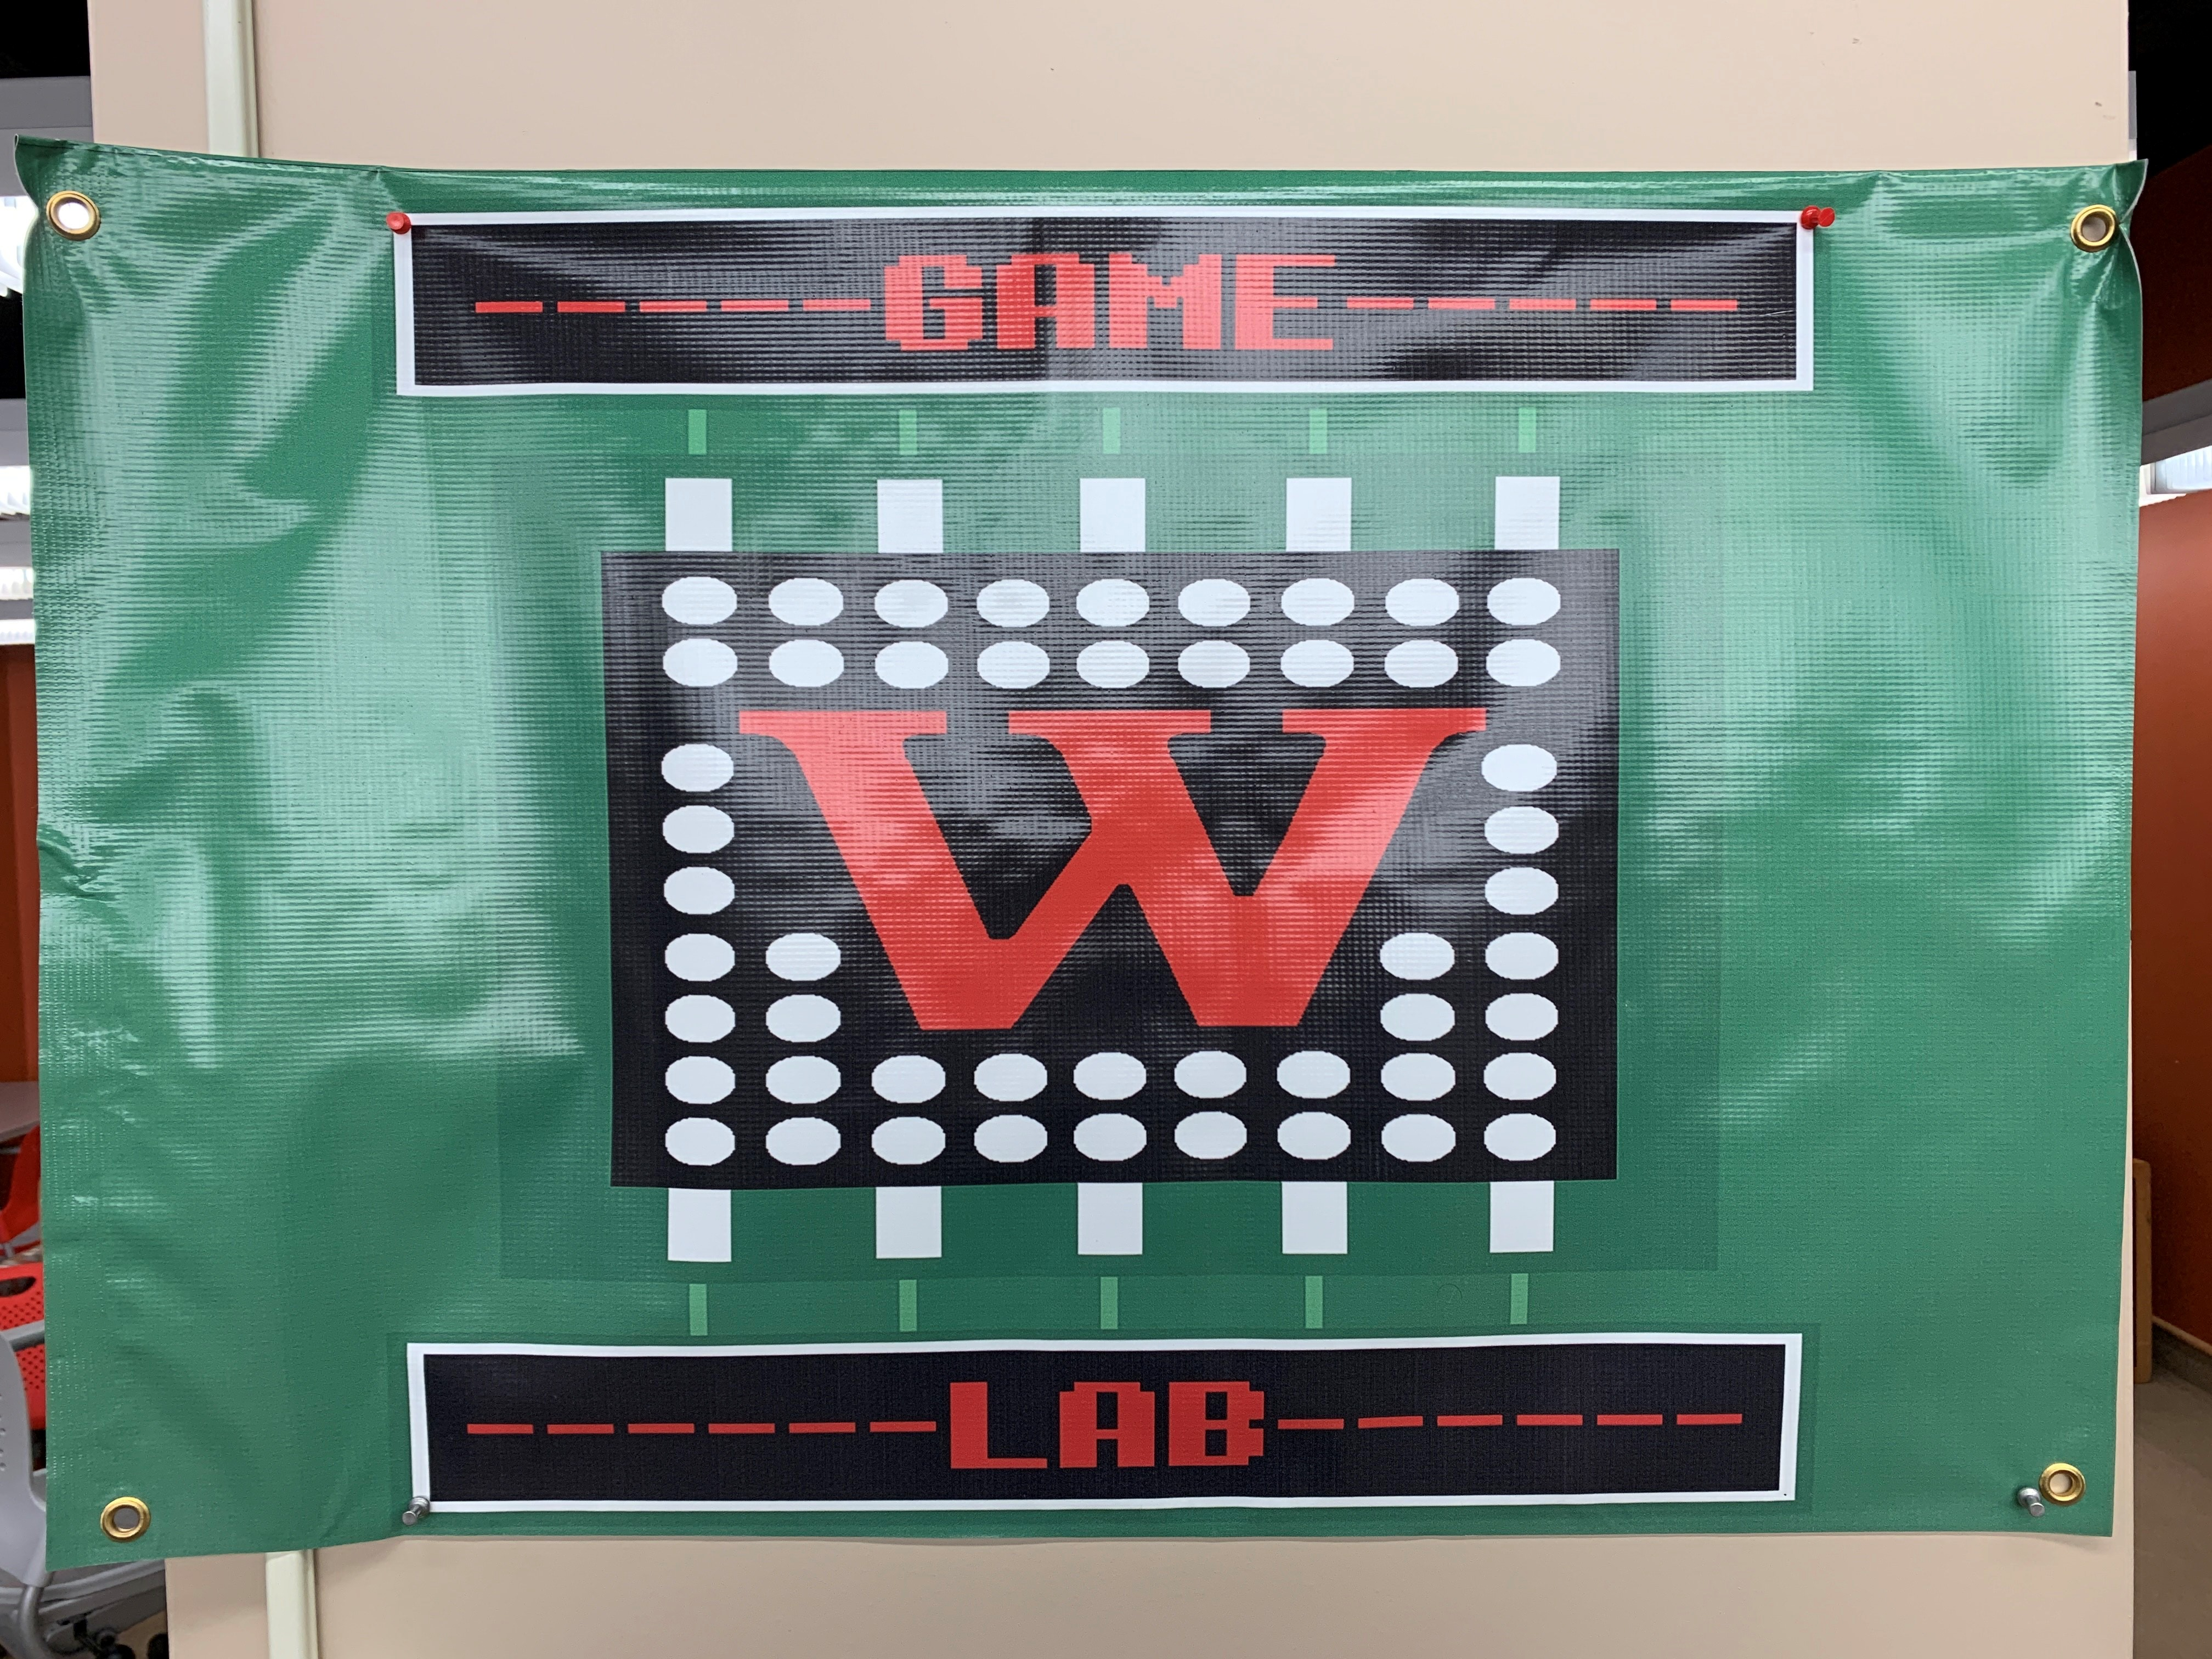 Pixelated Game Lab over football field